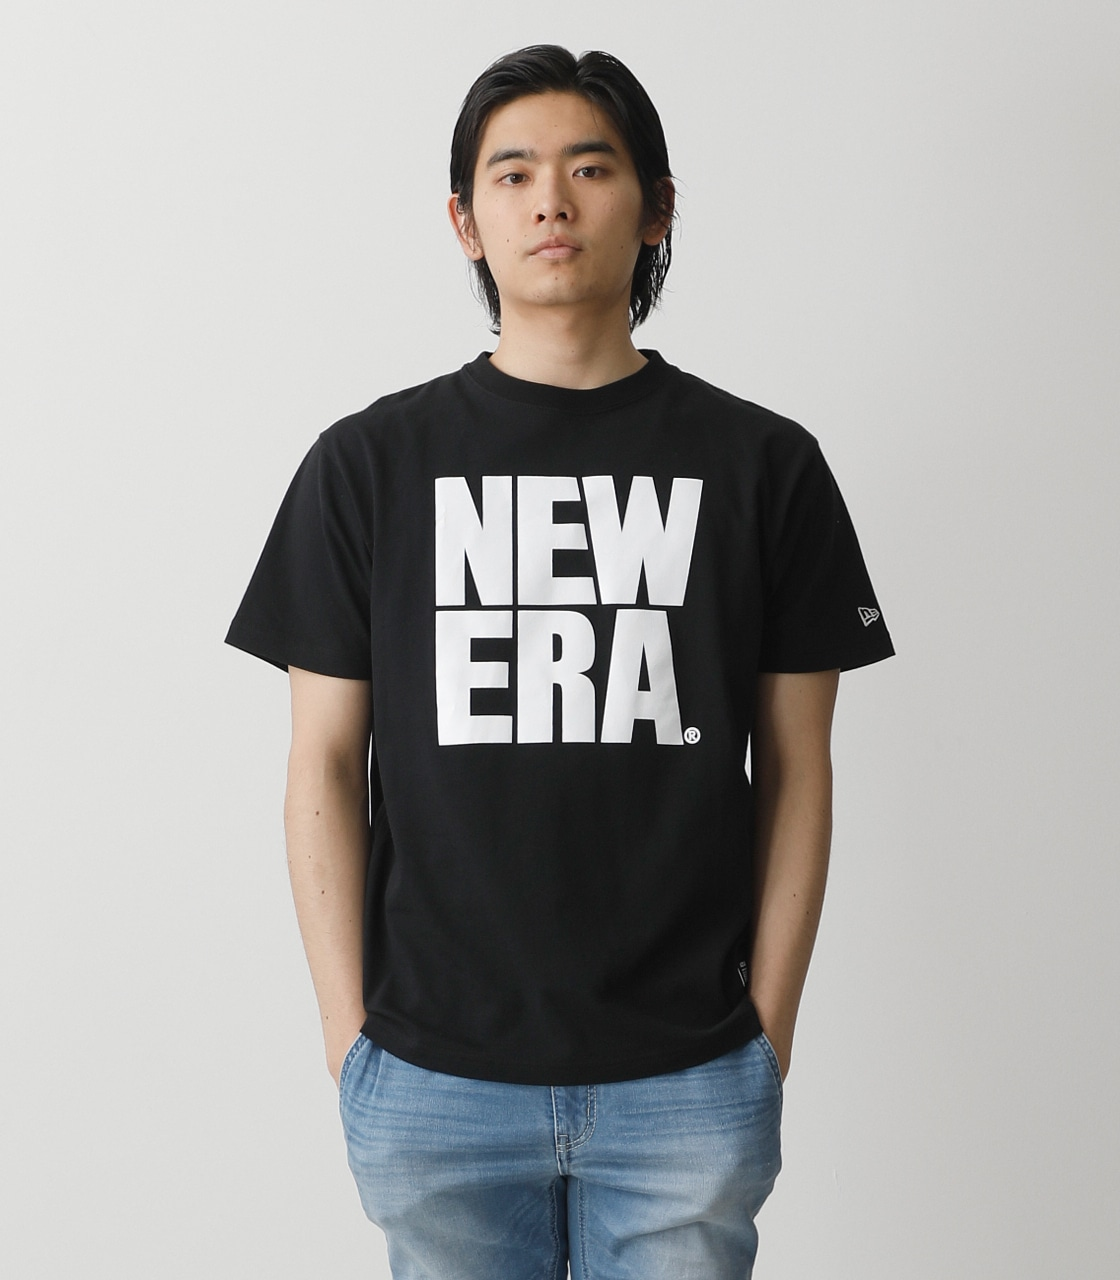 NEW ERA×AZUL T-SHIRTS/NEW ERA×AZULTシャツ 詳細画像 BLK 1